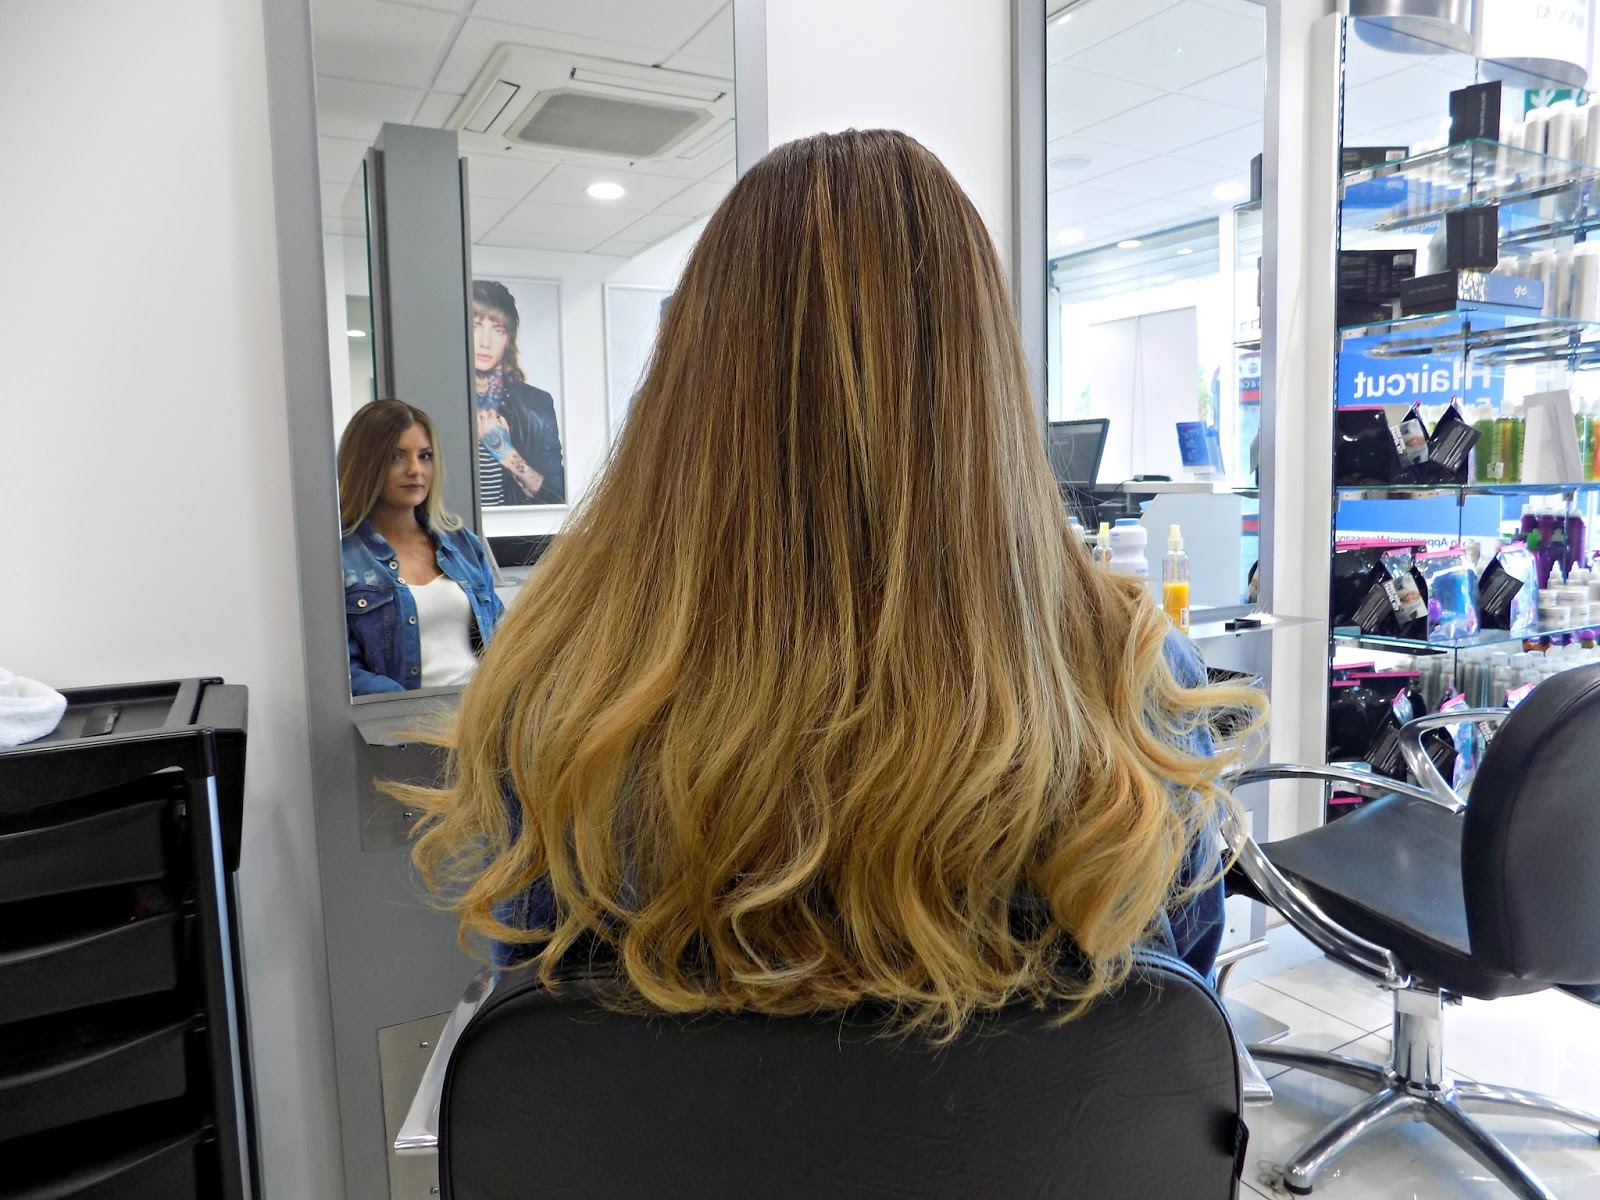 taking some me time is for sure one of my favourite things to do so when i was kindly invited down to the brand new supercuts in ealing for a complimentary